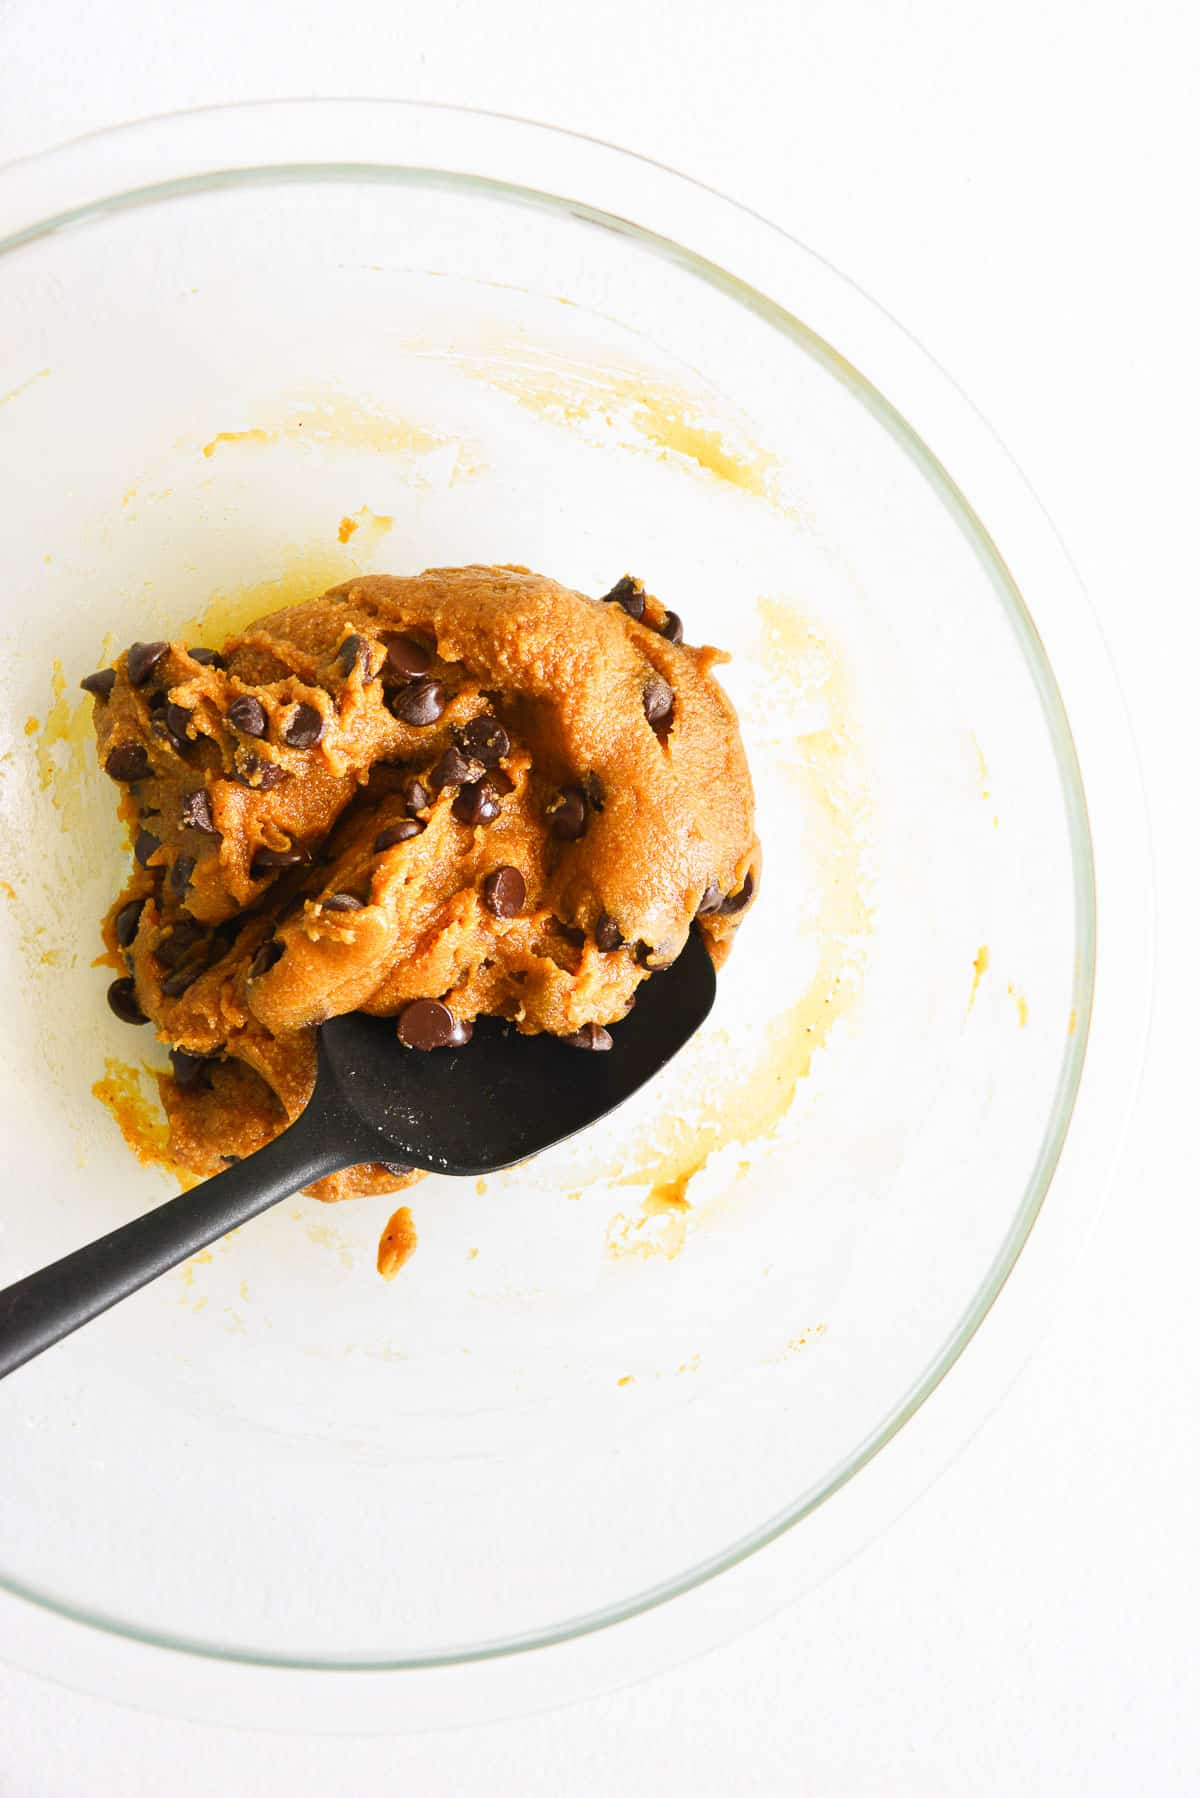 a mixing bowl full of gluten free chocolate chip cookie dough, loaded with chocolate chips